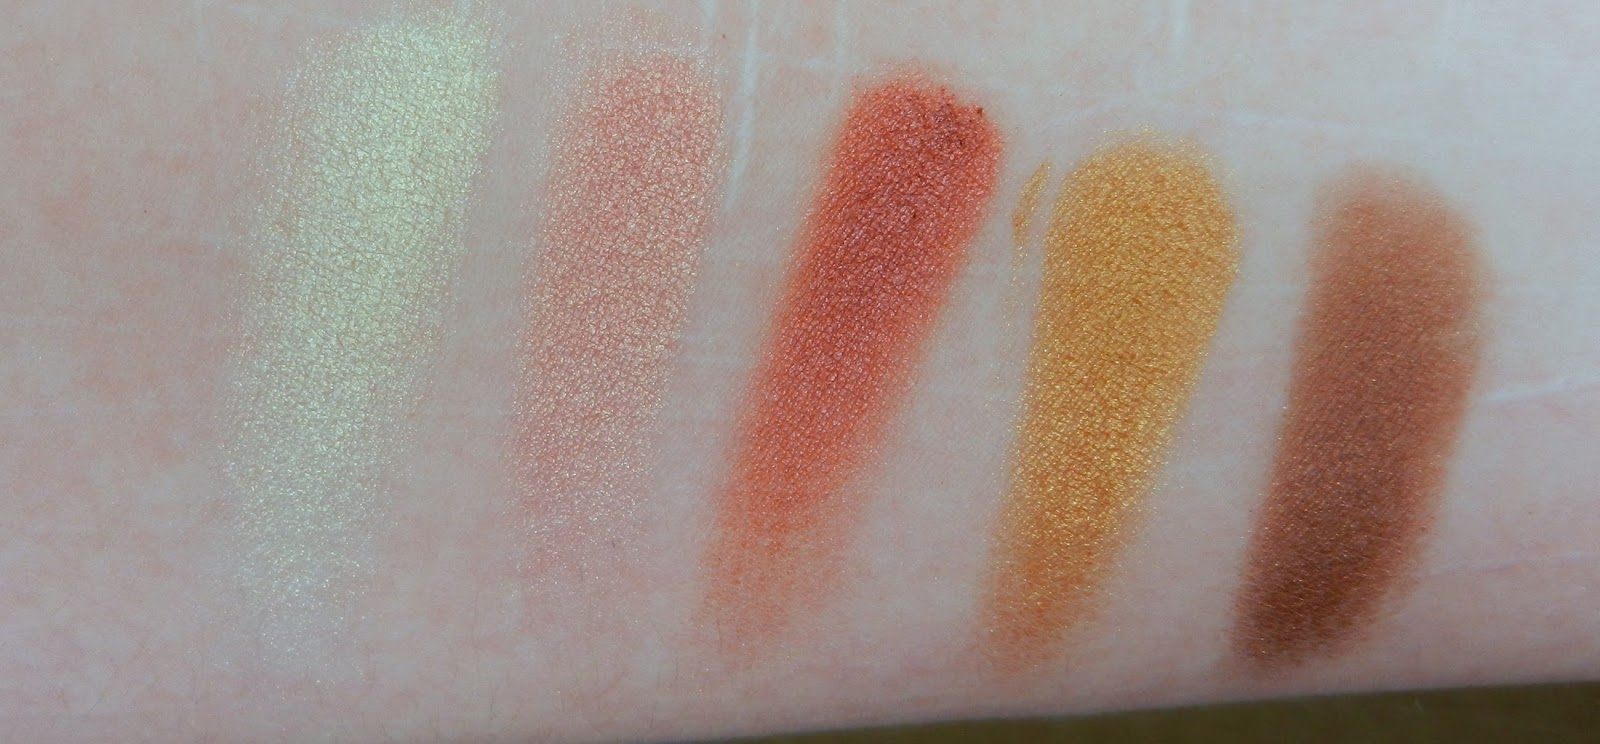 Urban Decay After Darkdalette Swatches Alter, Scene, Supersonic, Sinful, Off Duty